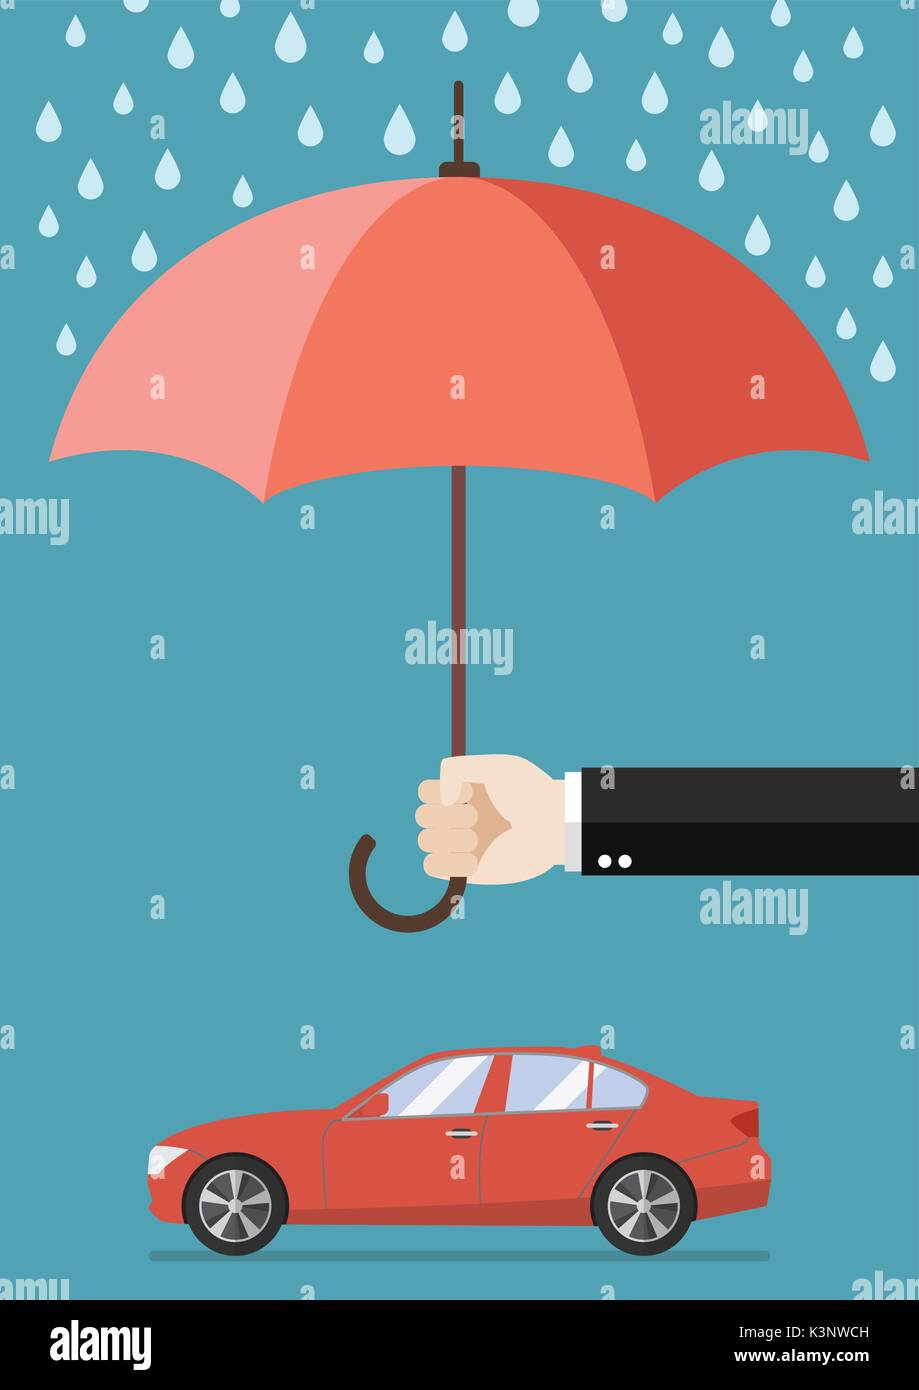 Hand Holding An Umbrella Protecting Car Business Concept Stock